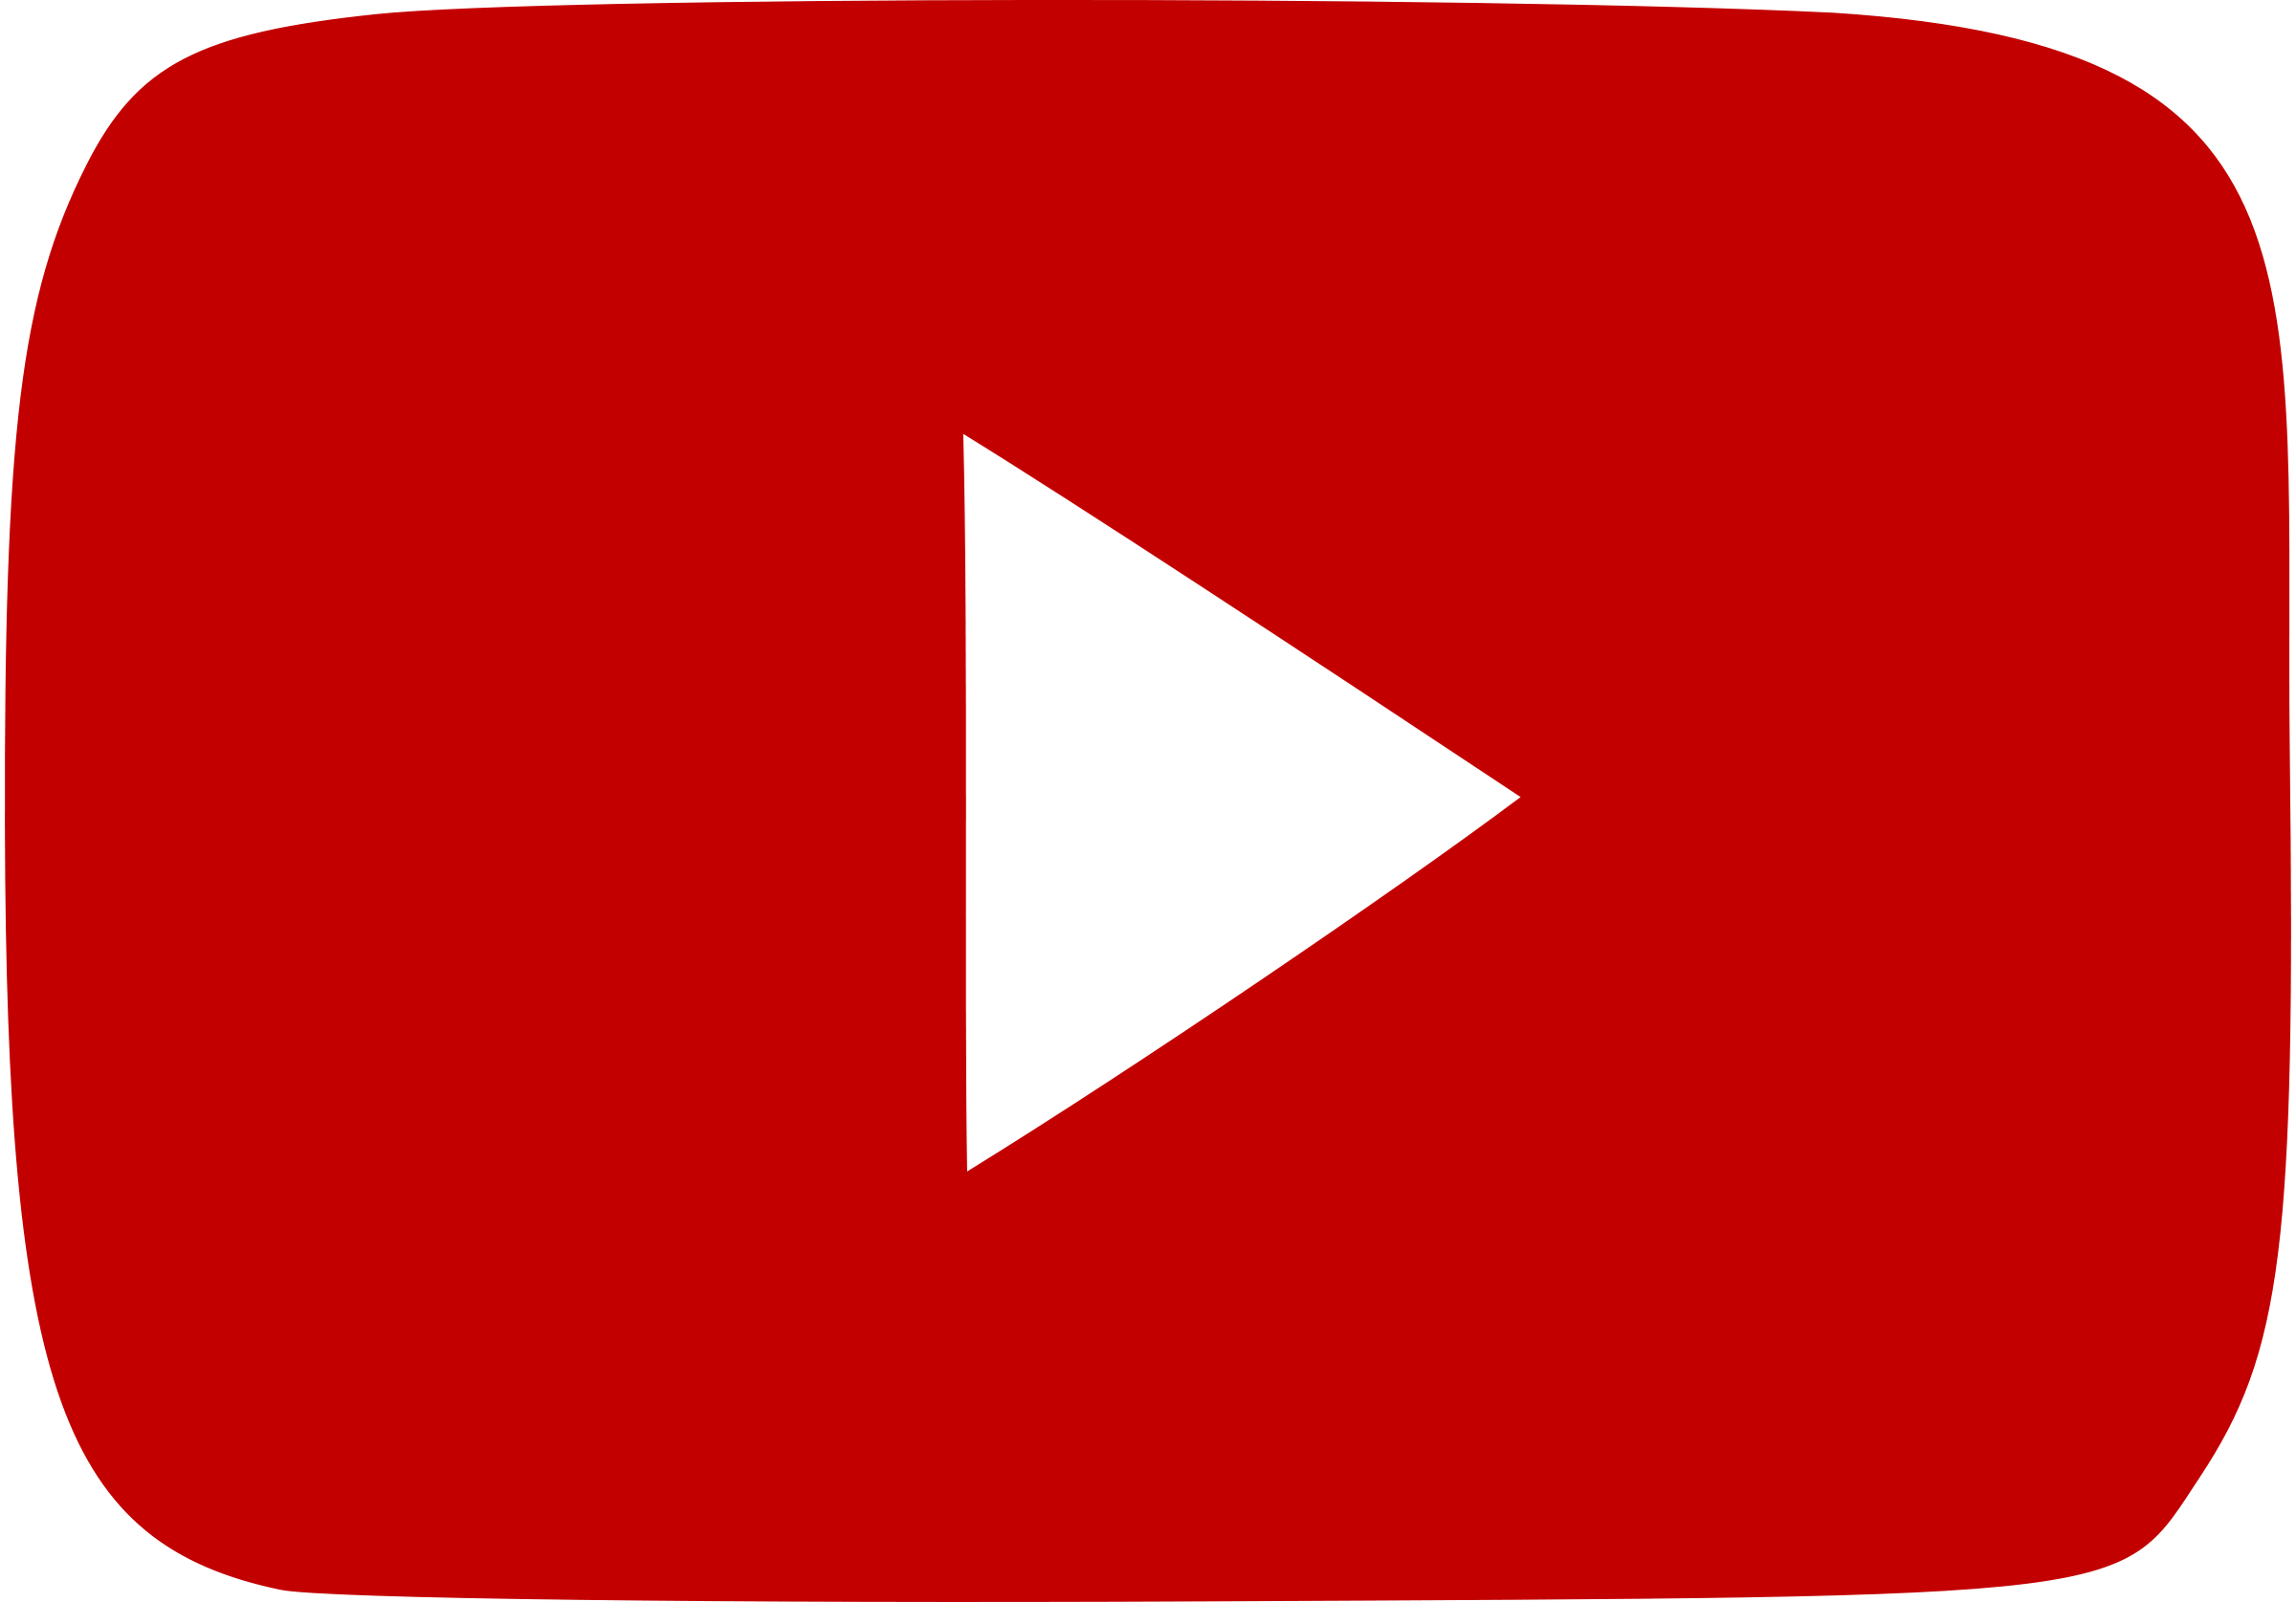 youtube-play-button-jq09nq-clipart